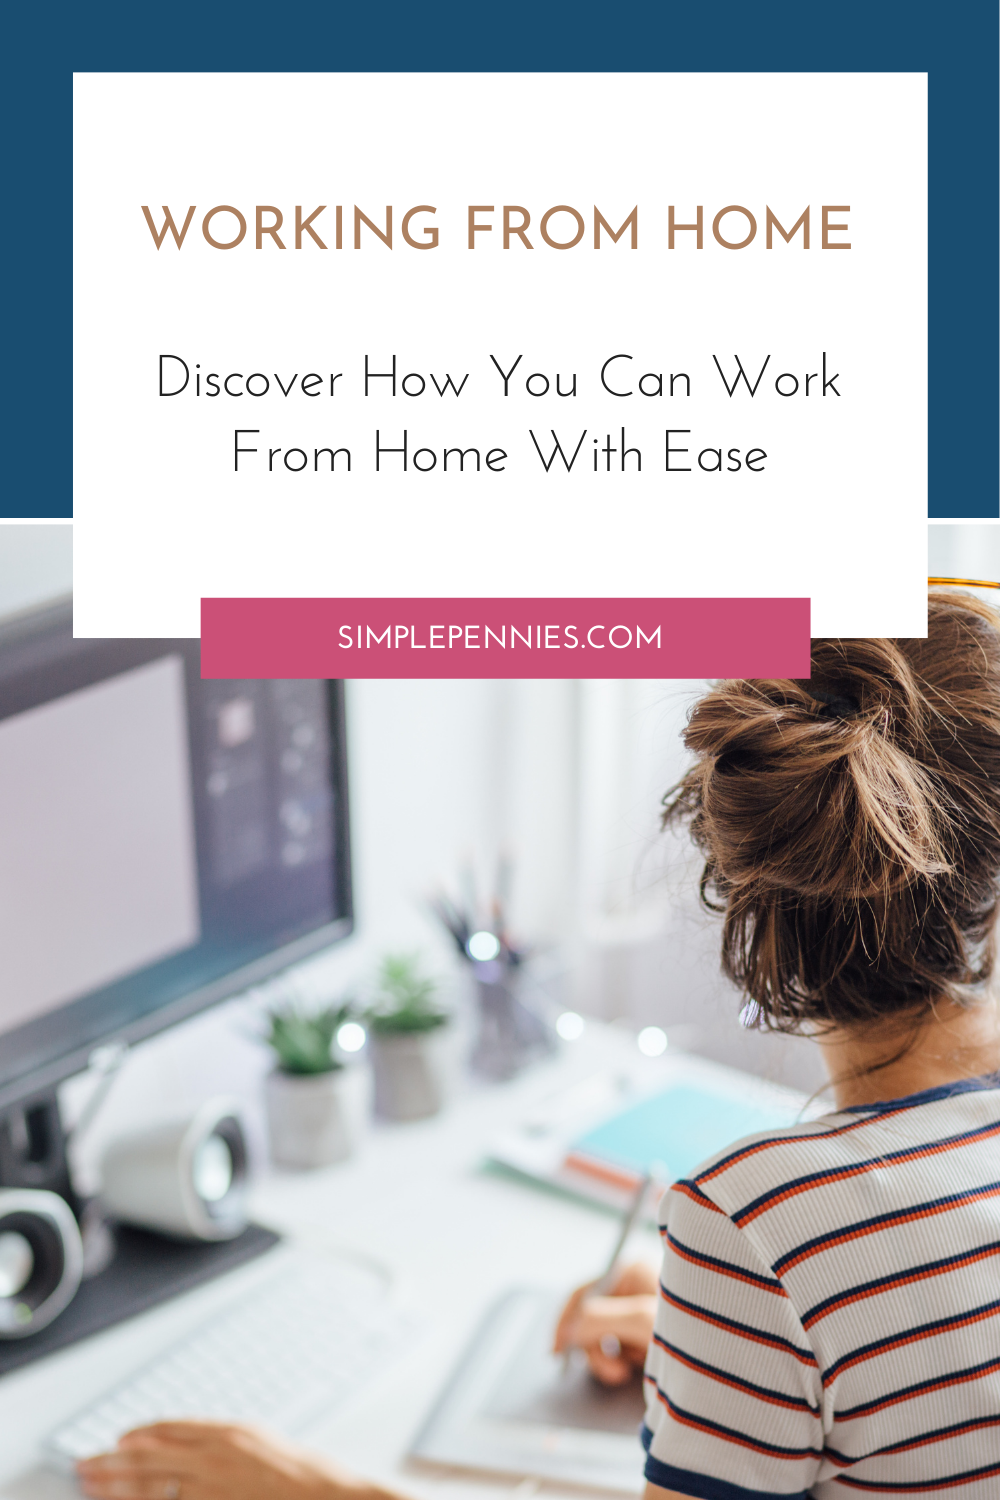 Working From Home - Discover How You Can Work From Home With Ease